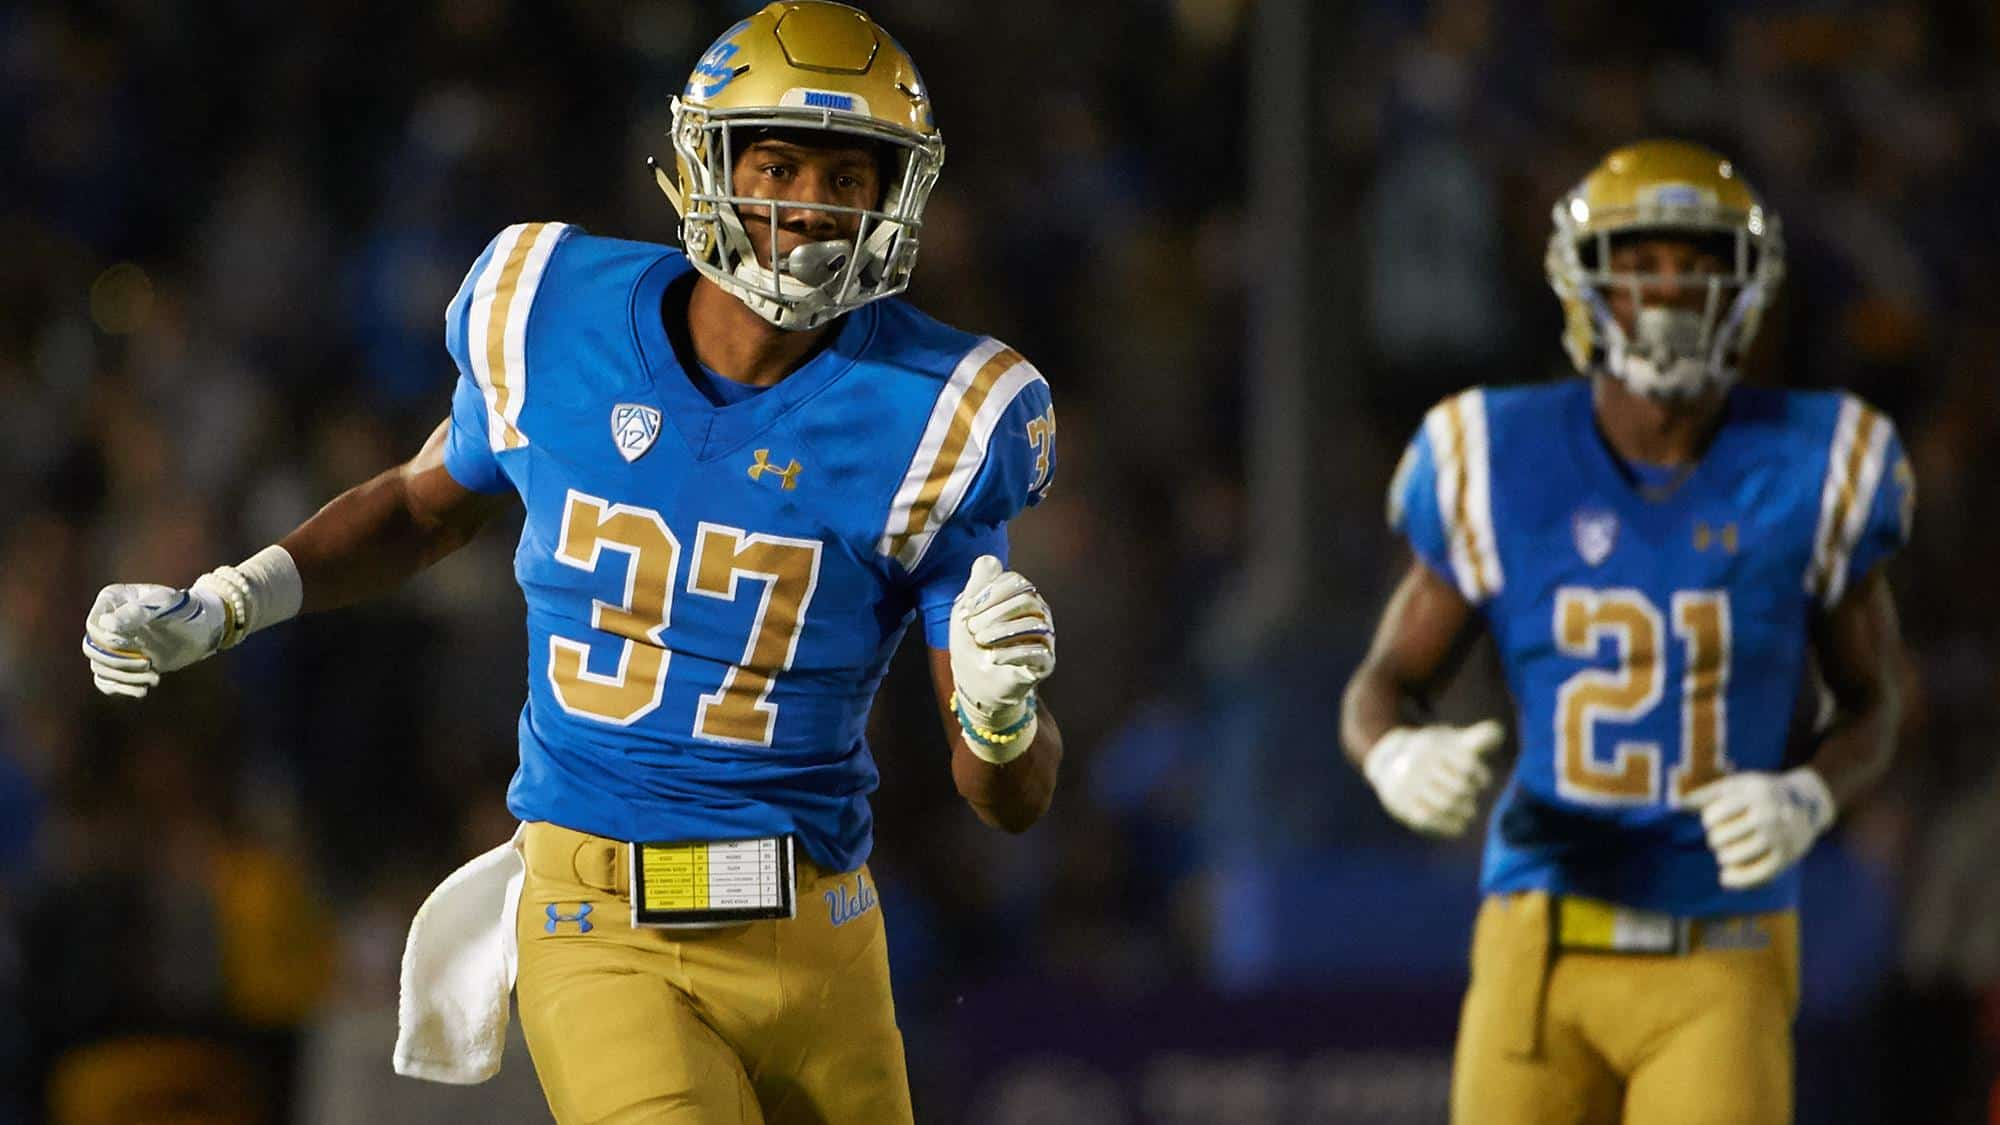 UCLA safety Quentin Lake isn't flashy, but has mastered the fundamentals